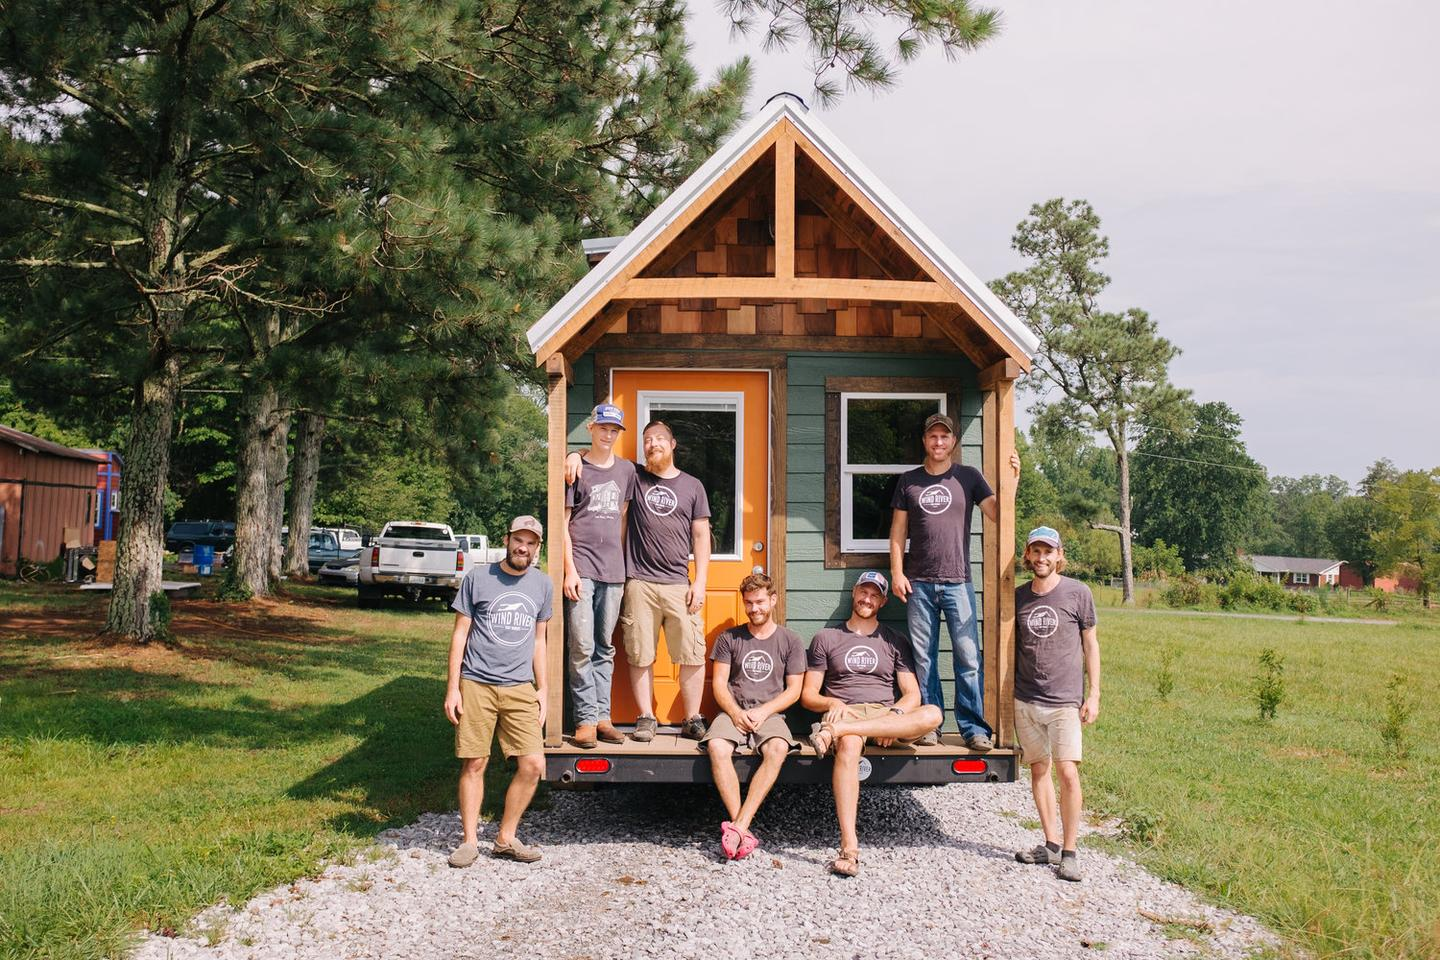 The Wind River Tiny Homes team with its Acadia tiny house